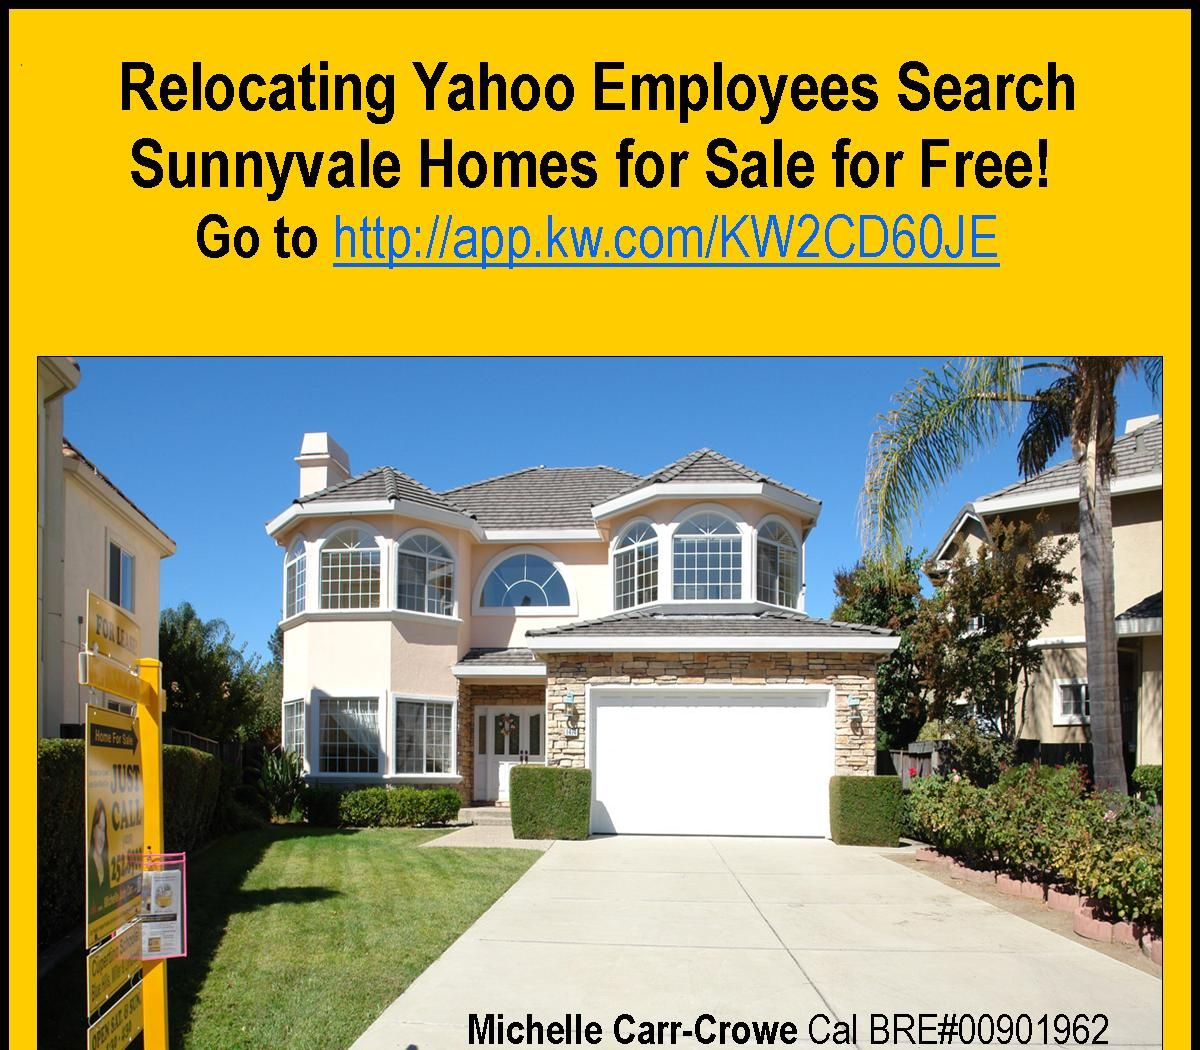 How Relocating Yahoo Employees Easily Search For Sunnyvale Homes House For Lease Lynbrook Sunnyvale